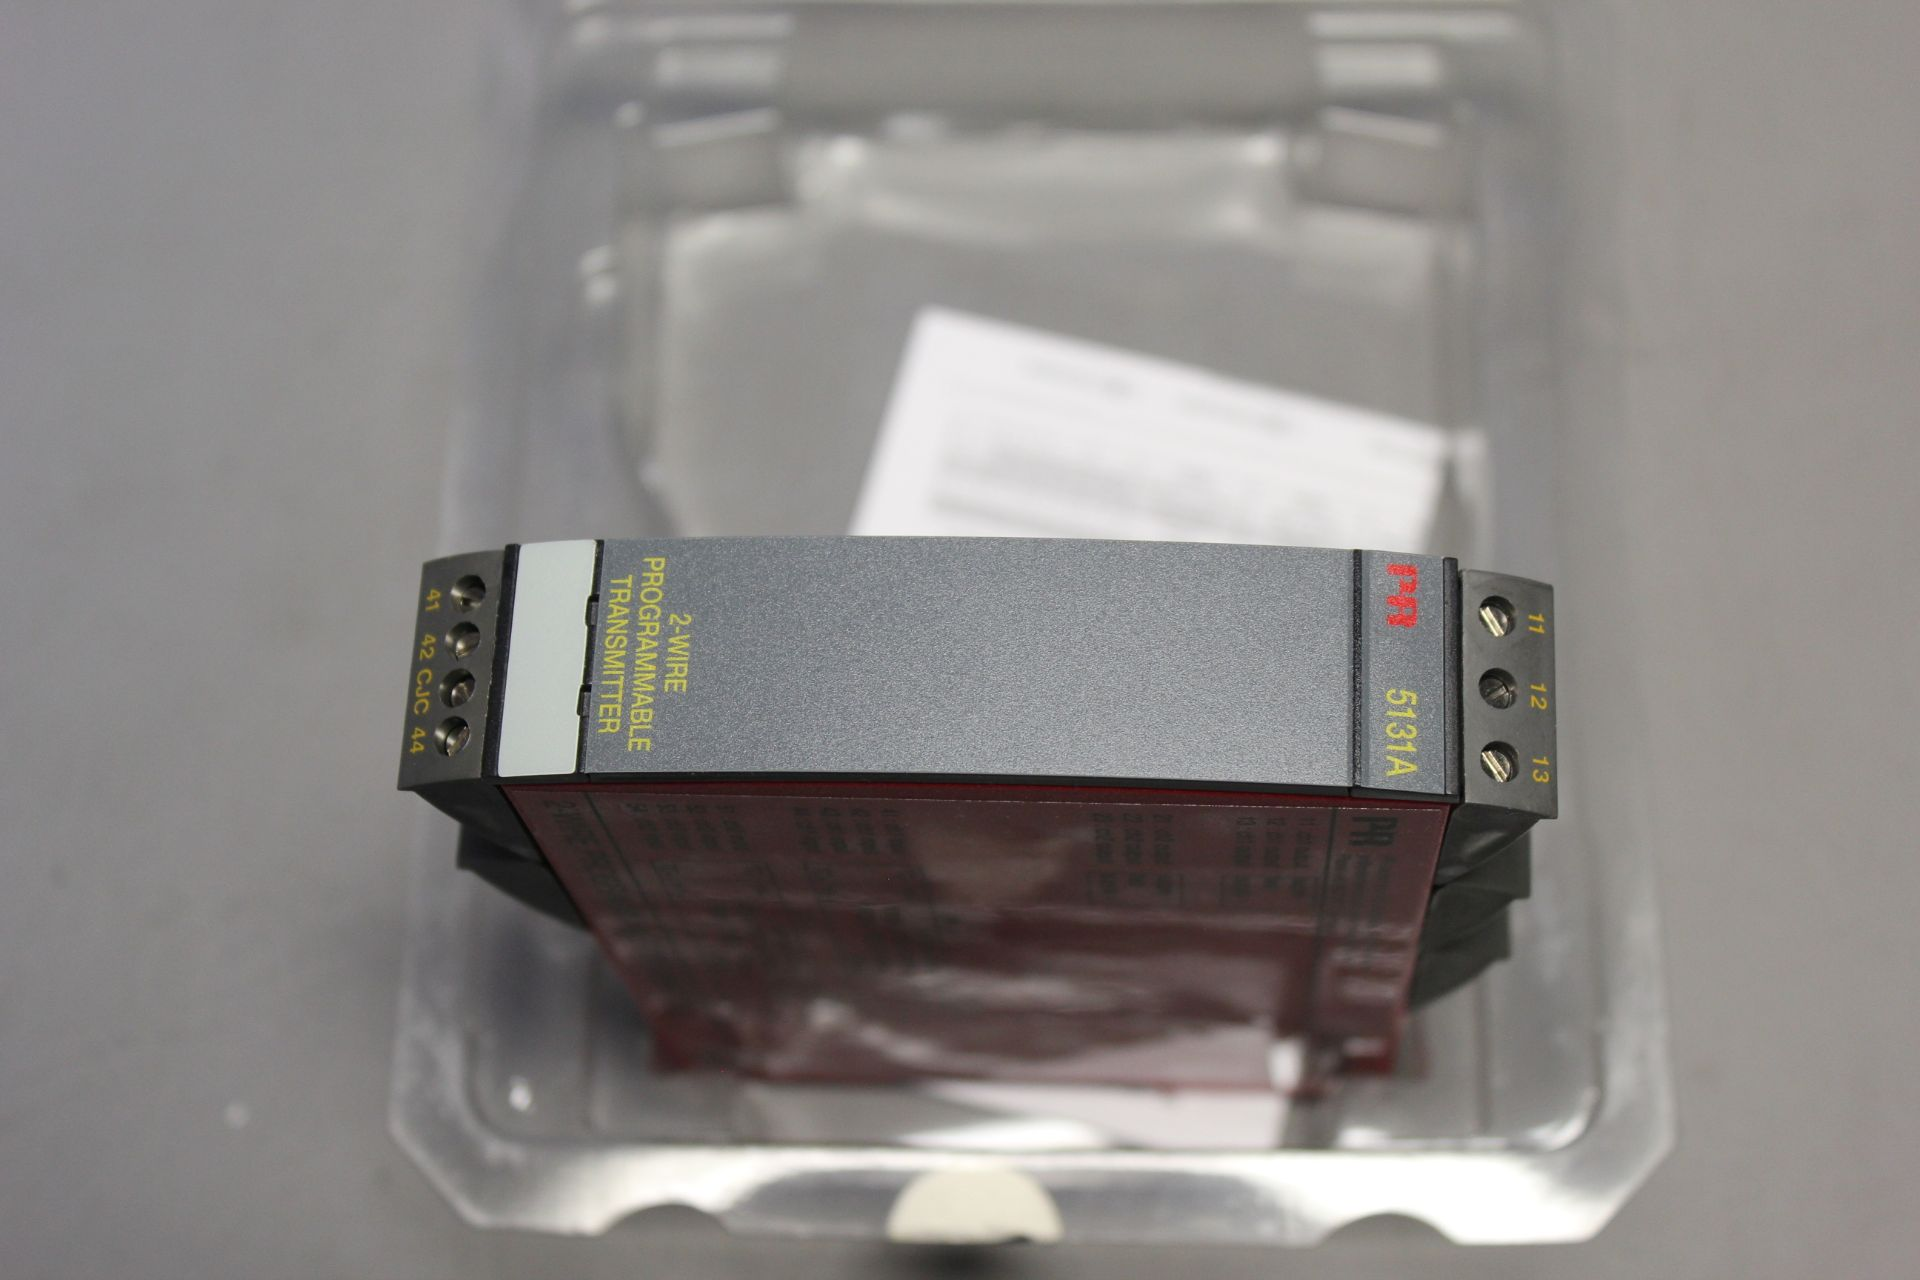 NEW PR ELECTRONICS 2 WIRE PROGRAMMABLE TRANSMITTER - Image 5 of 5